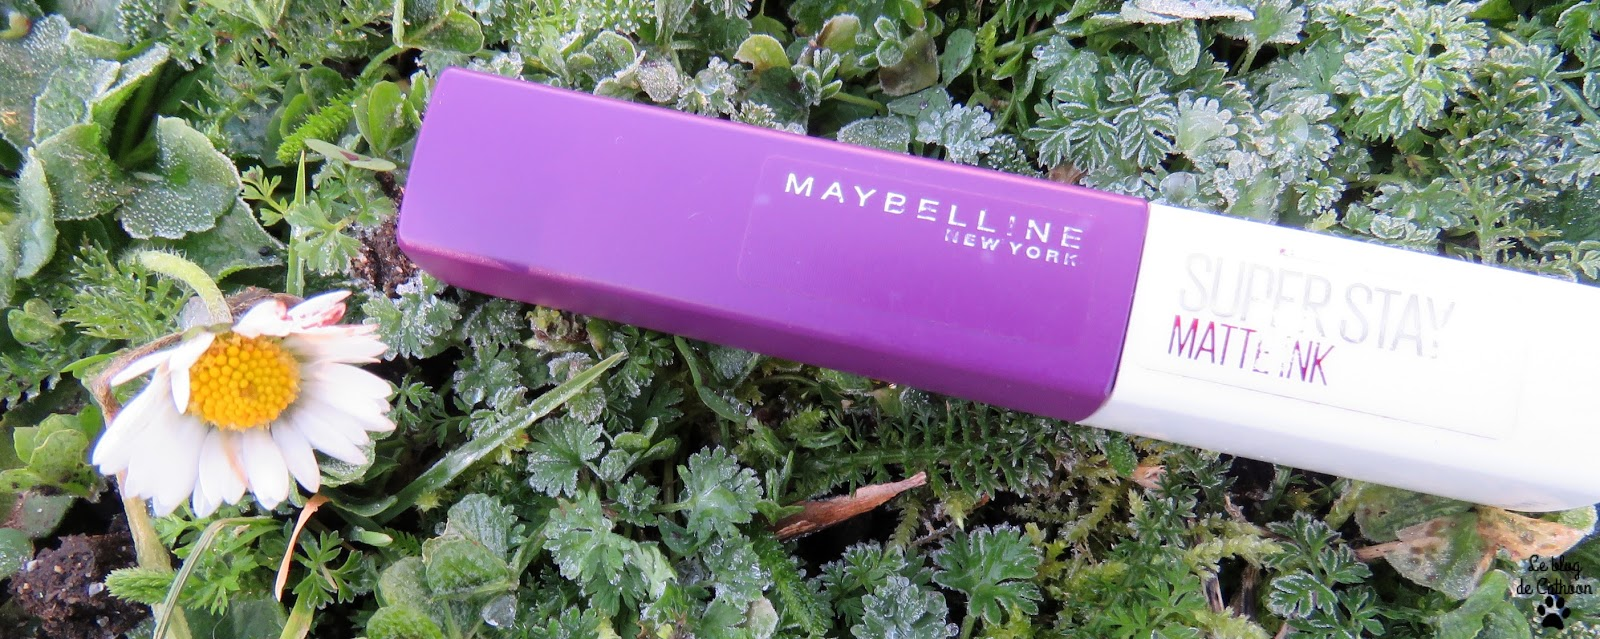 Superstay Matte Ink 40 Believer - Maybelline